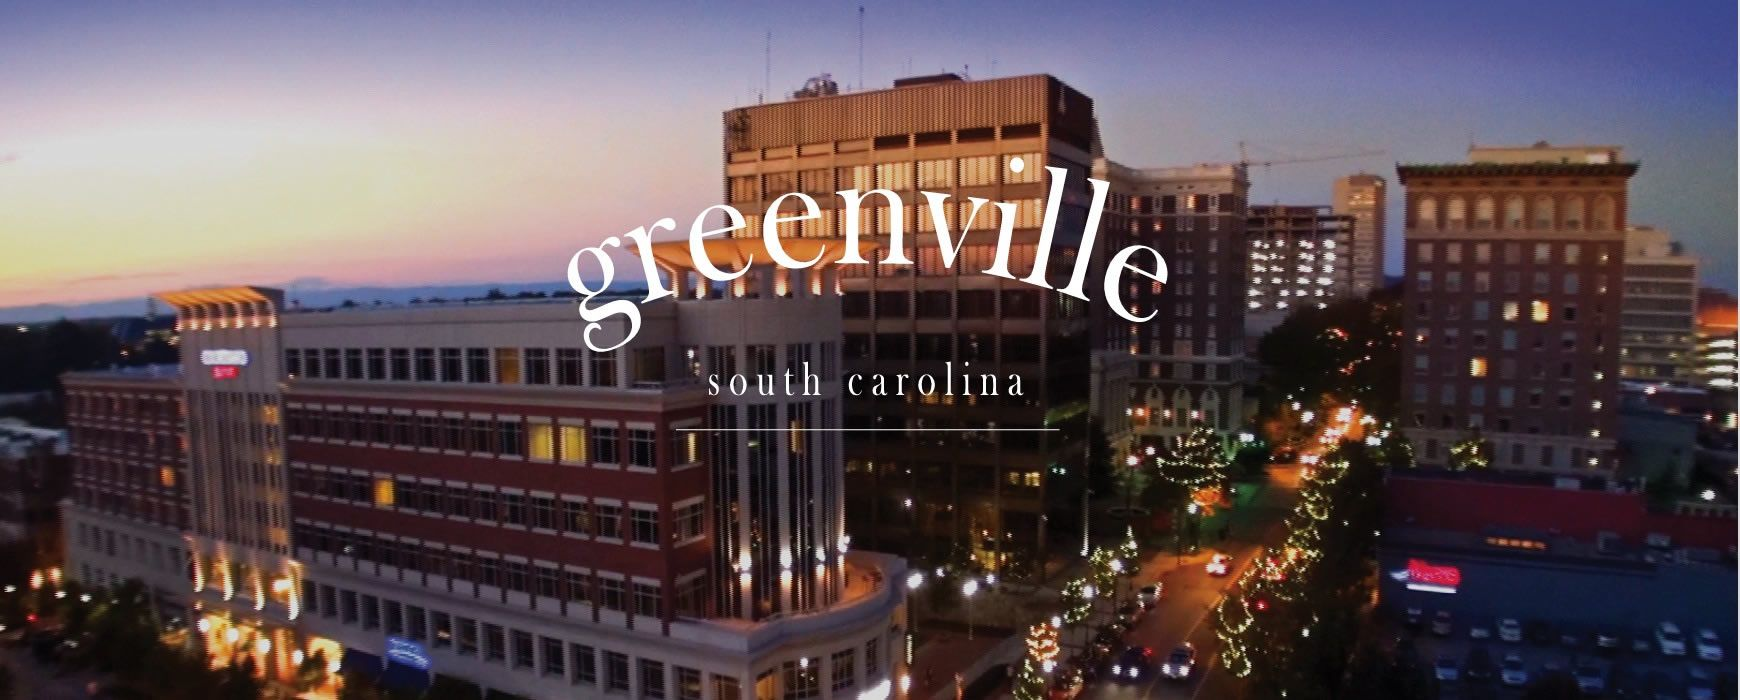 10 Signs You Re From Greenville Sc Greenville Sc Greenville Free Family Fun